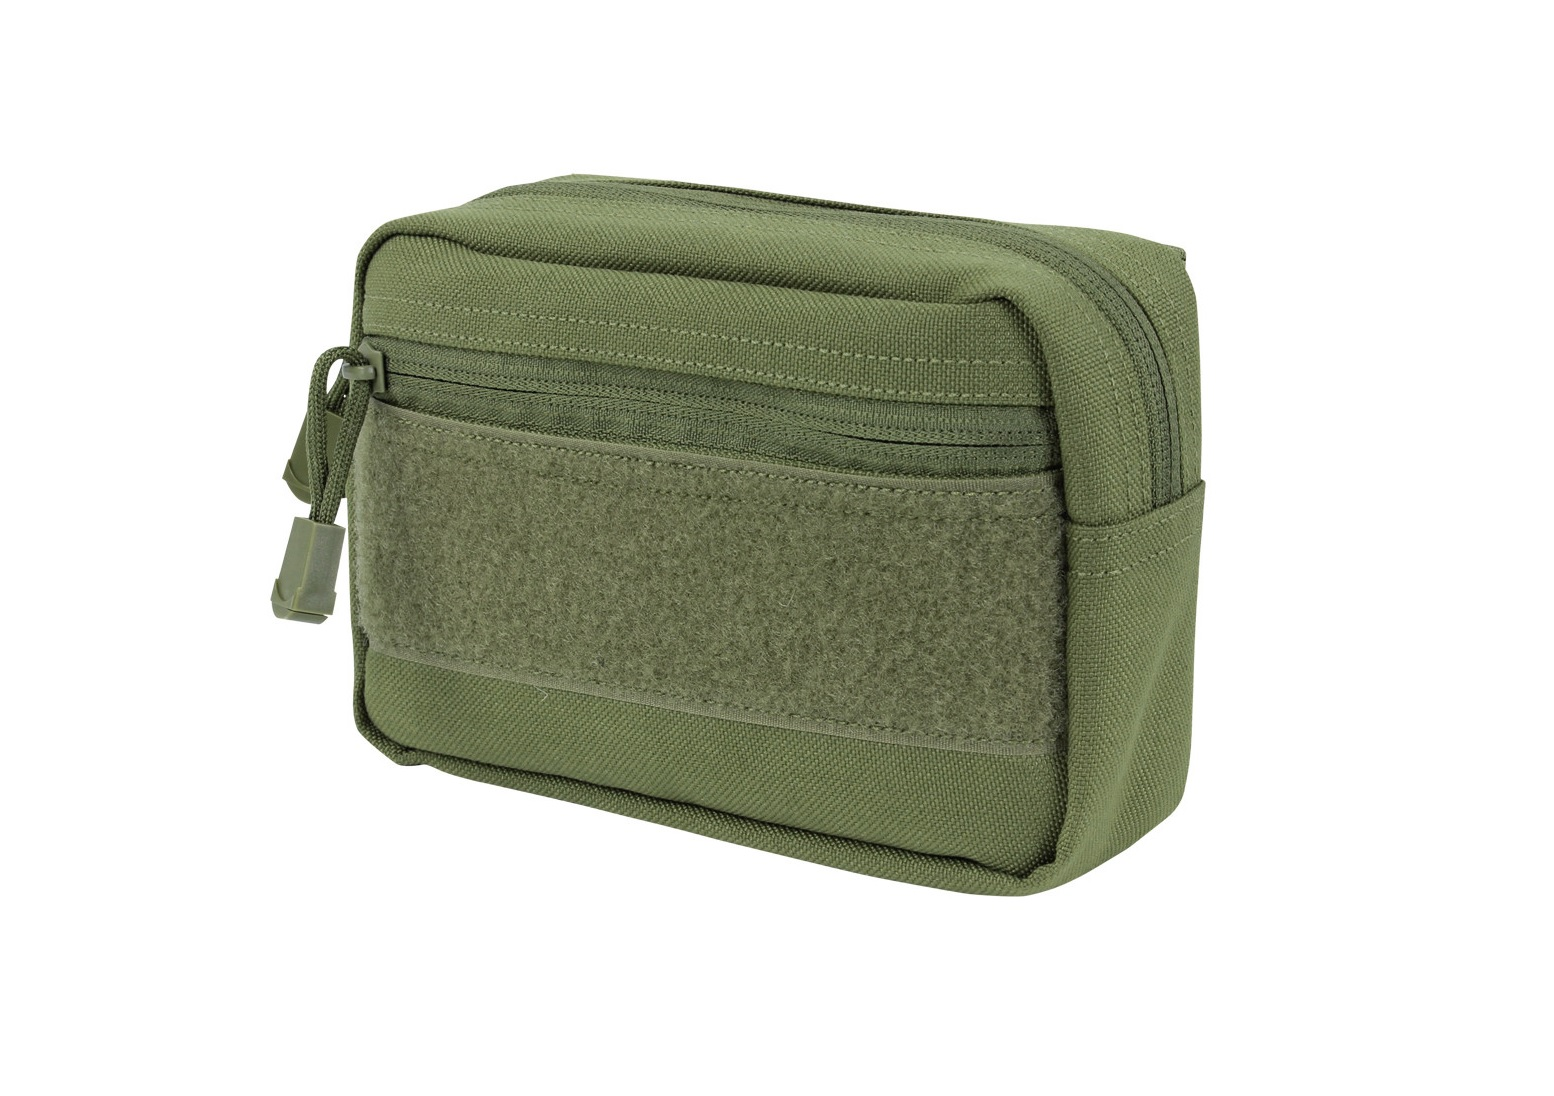 COMPACT UTILITY POUCH - OD